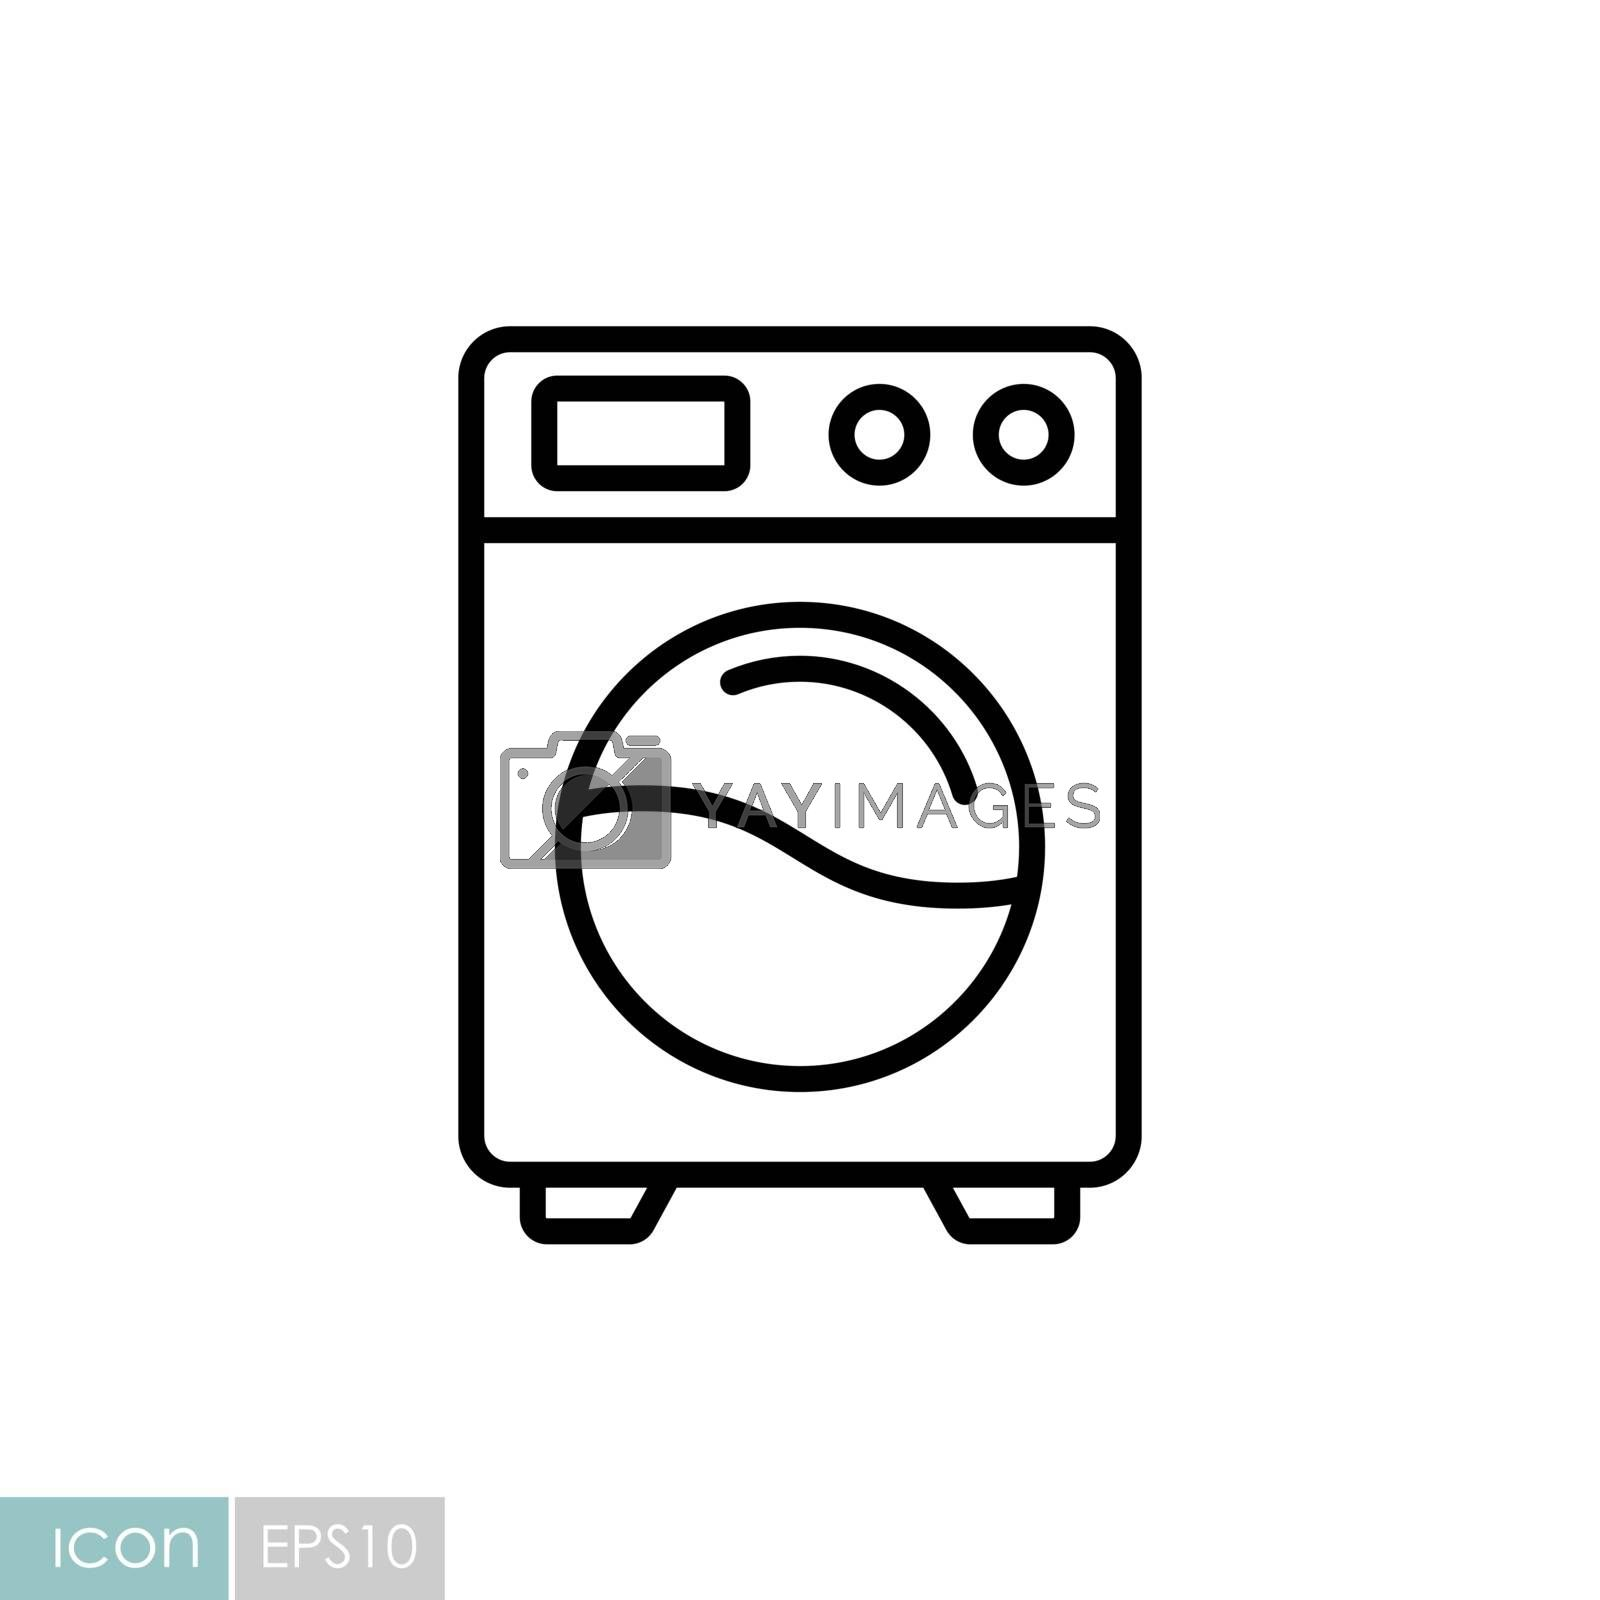 Washing machine flat vector icon. Graph symbol for household electric web site and apps design, logo, app, UI